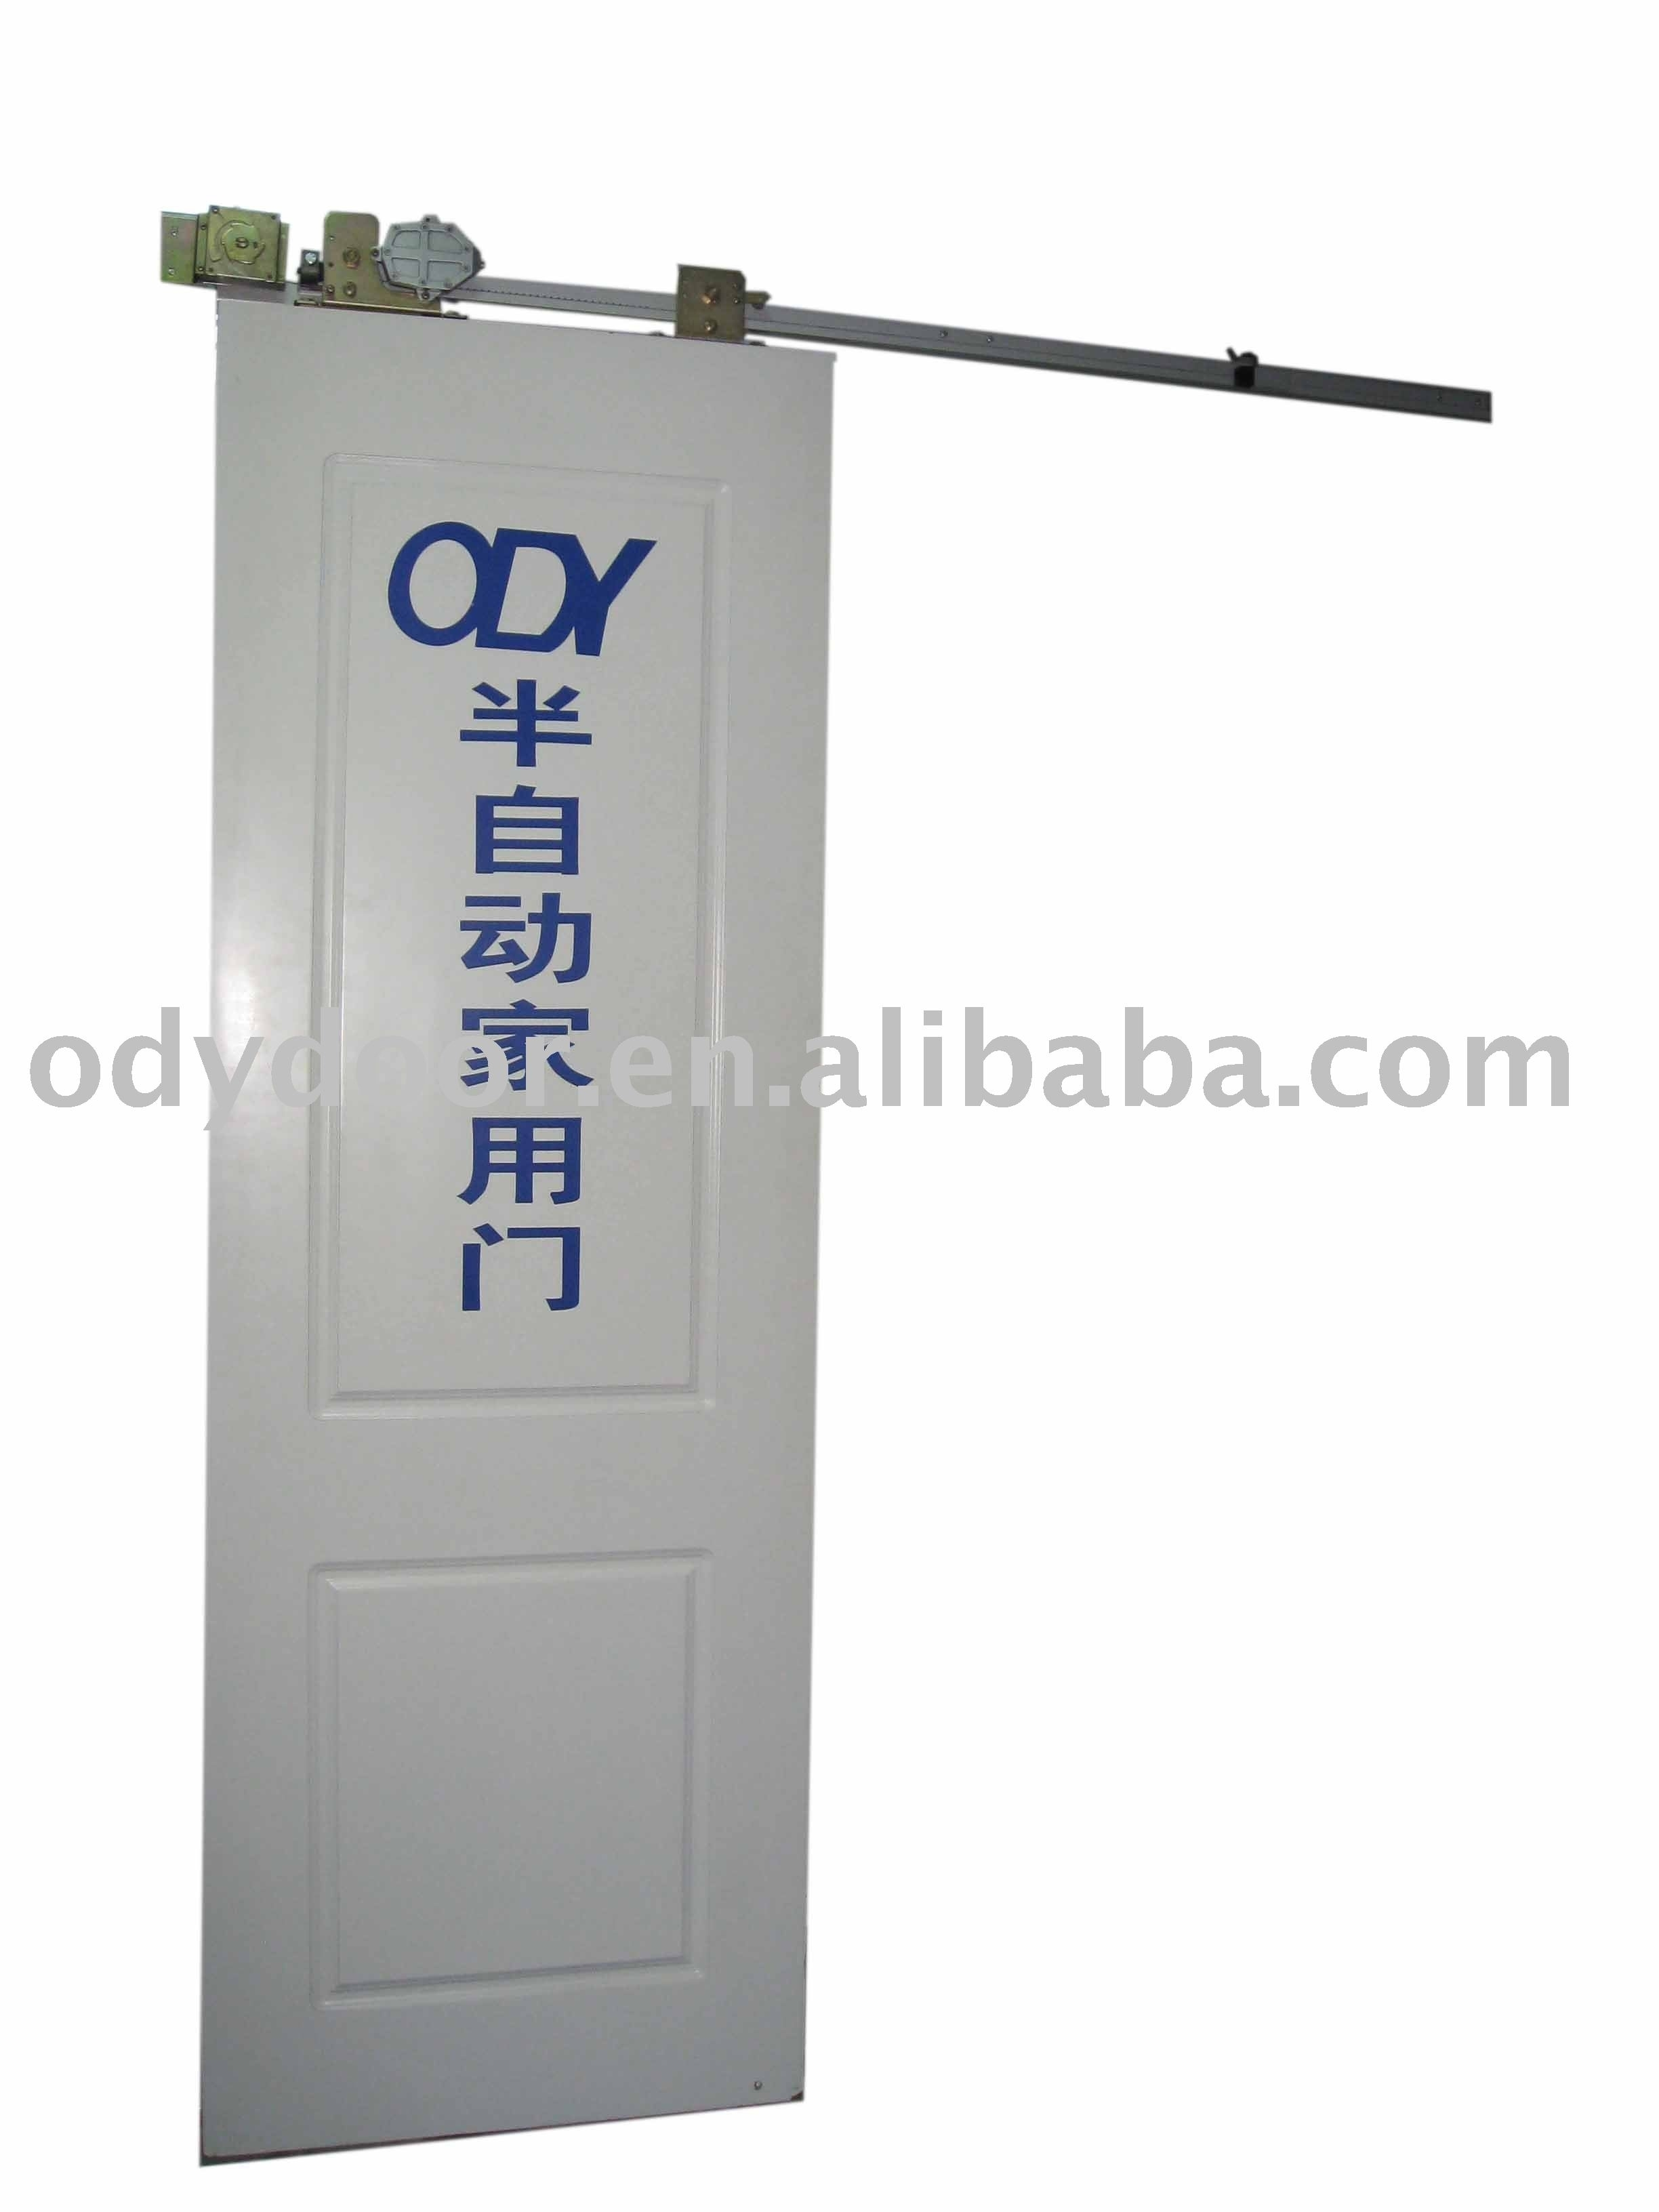 Improvements Automatic Sliding Screen Door CloserImprovements Automatic Sliding Screen Door Closer